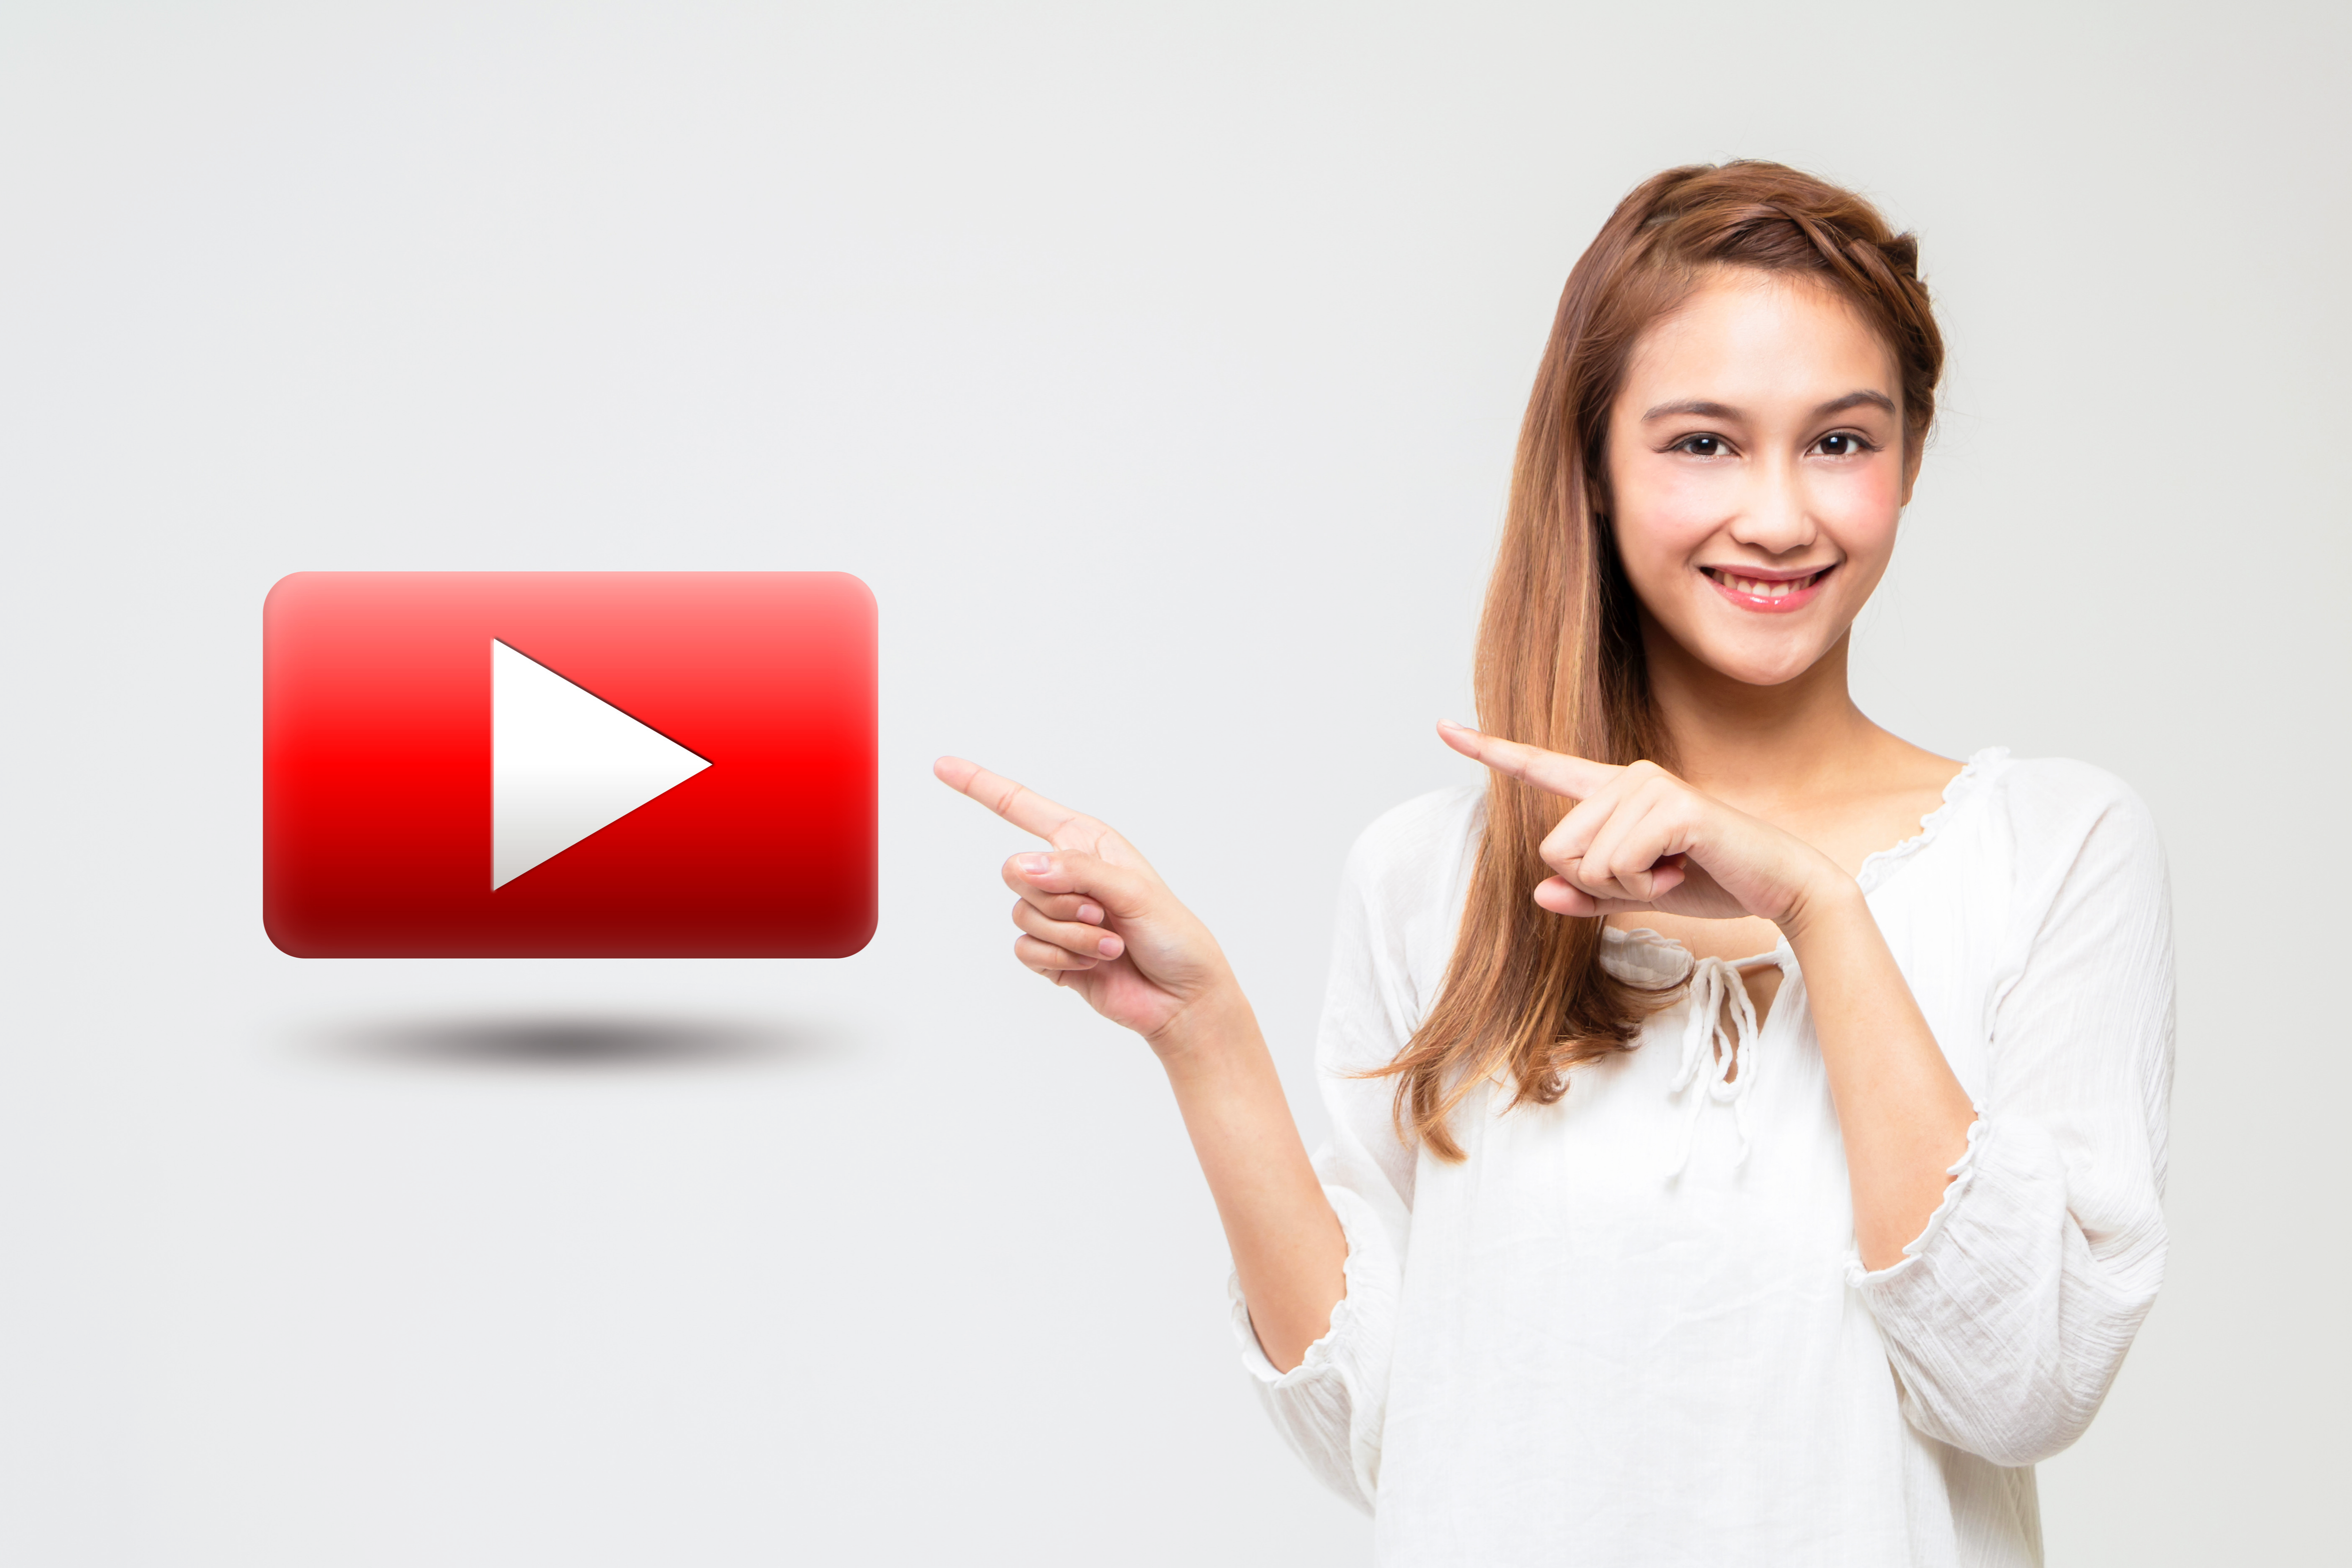 How to Choose a Good YouTube Channel Name That'll Stick